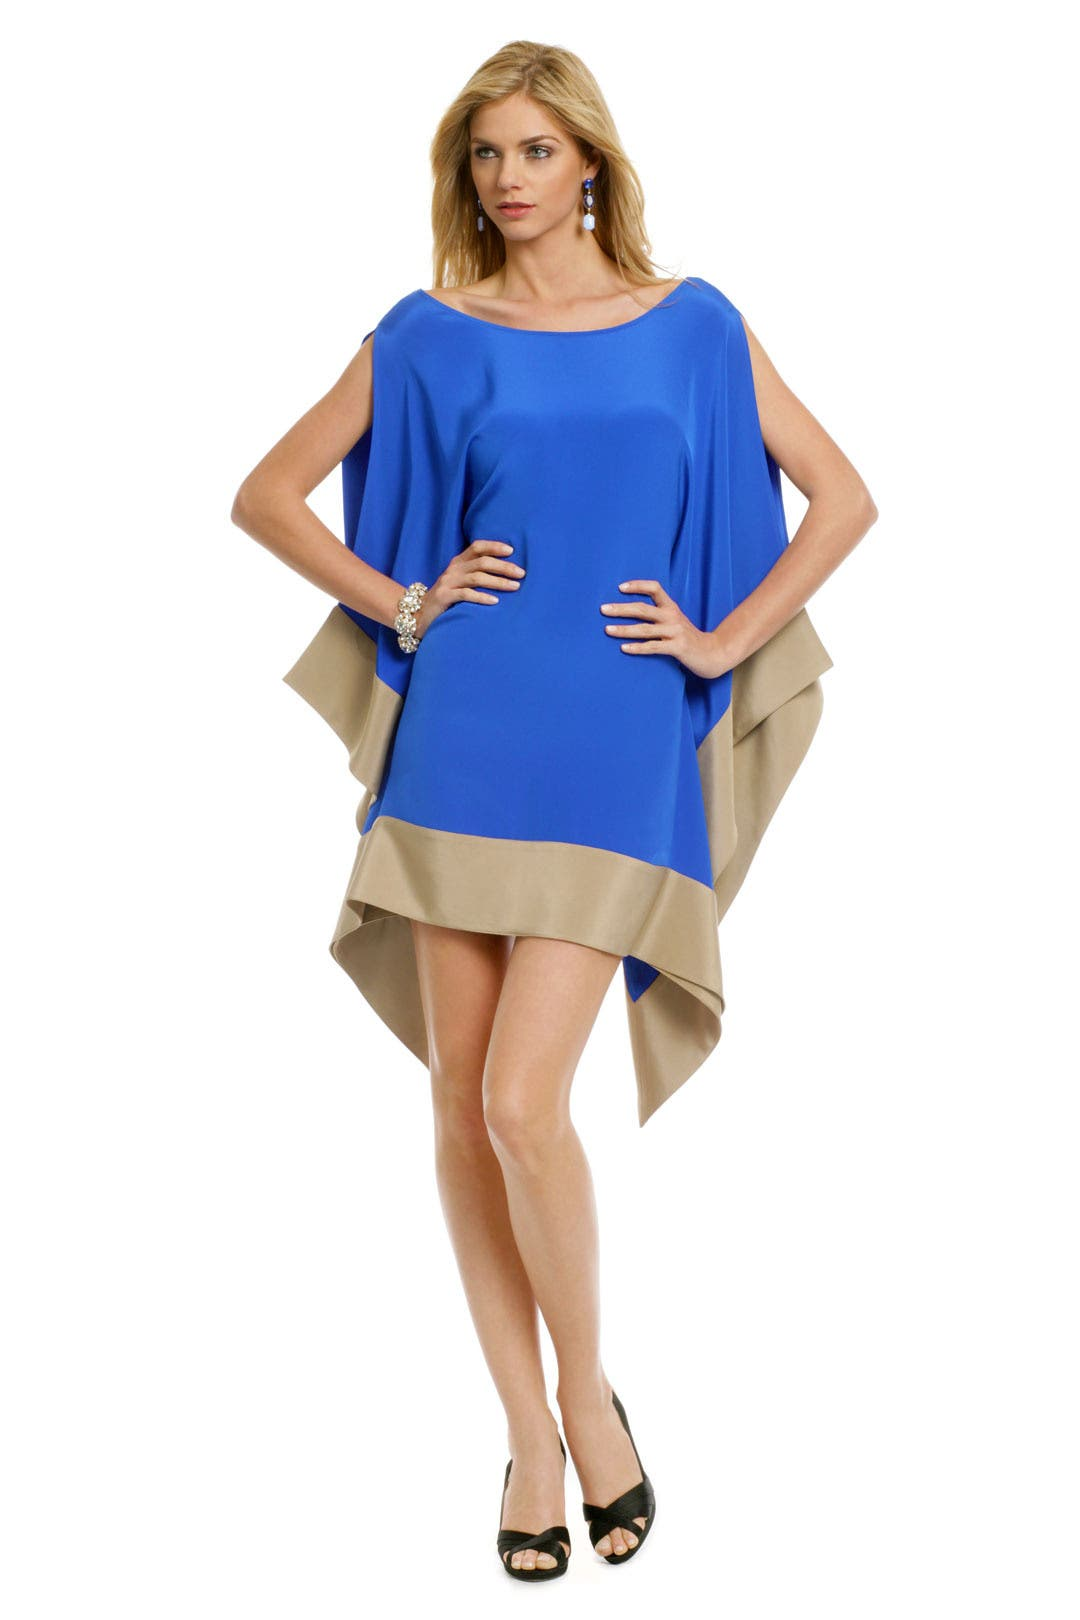 Allure Draped Dress by Jay Godfrey